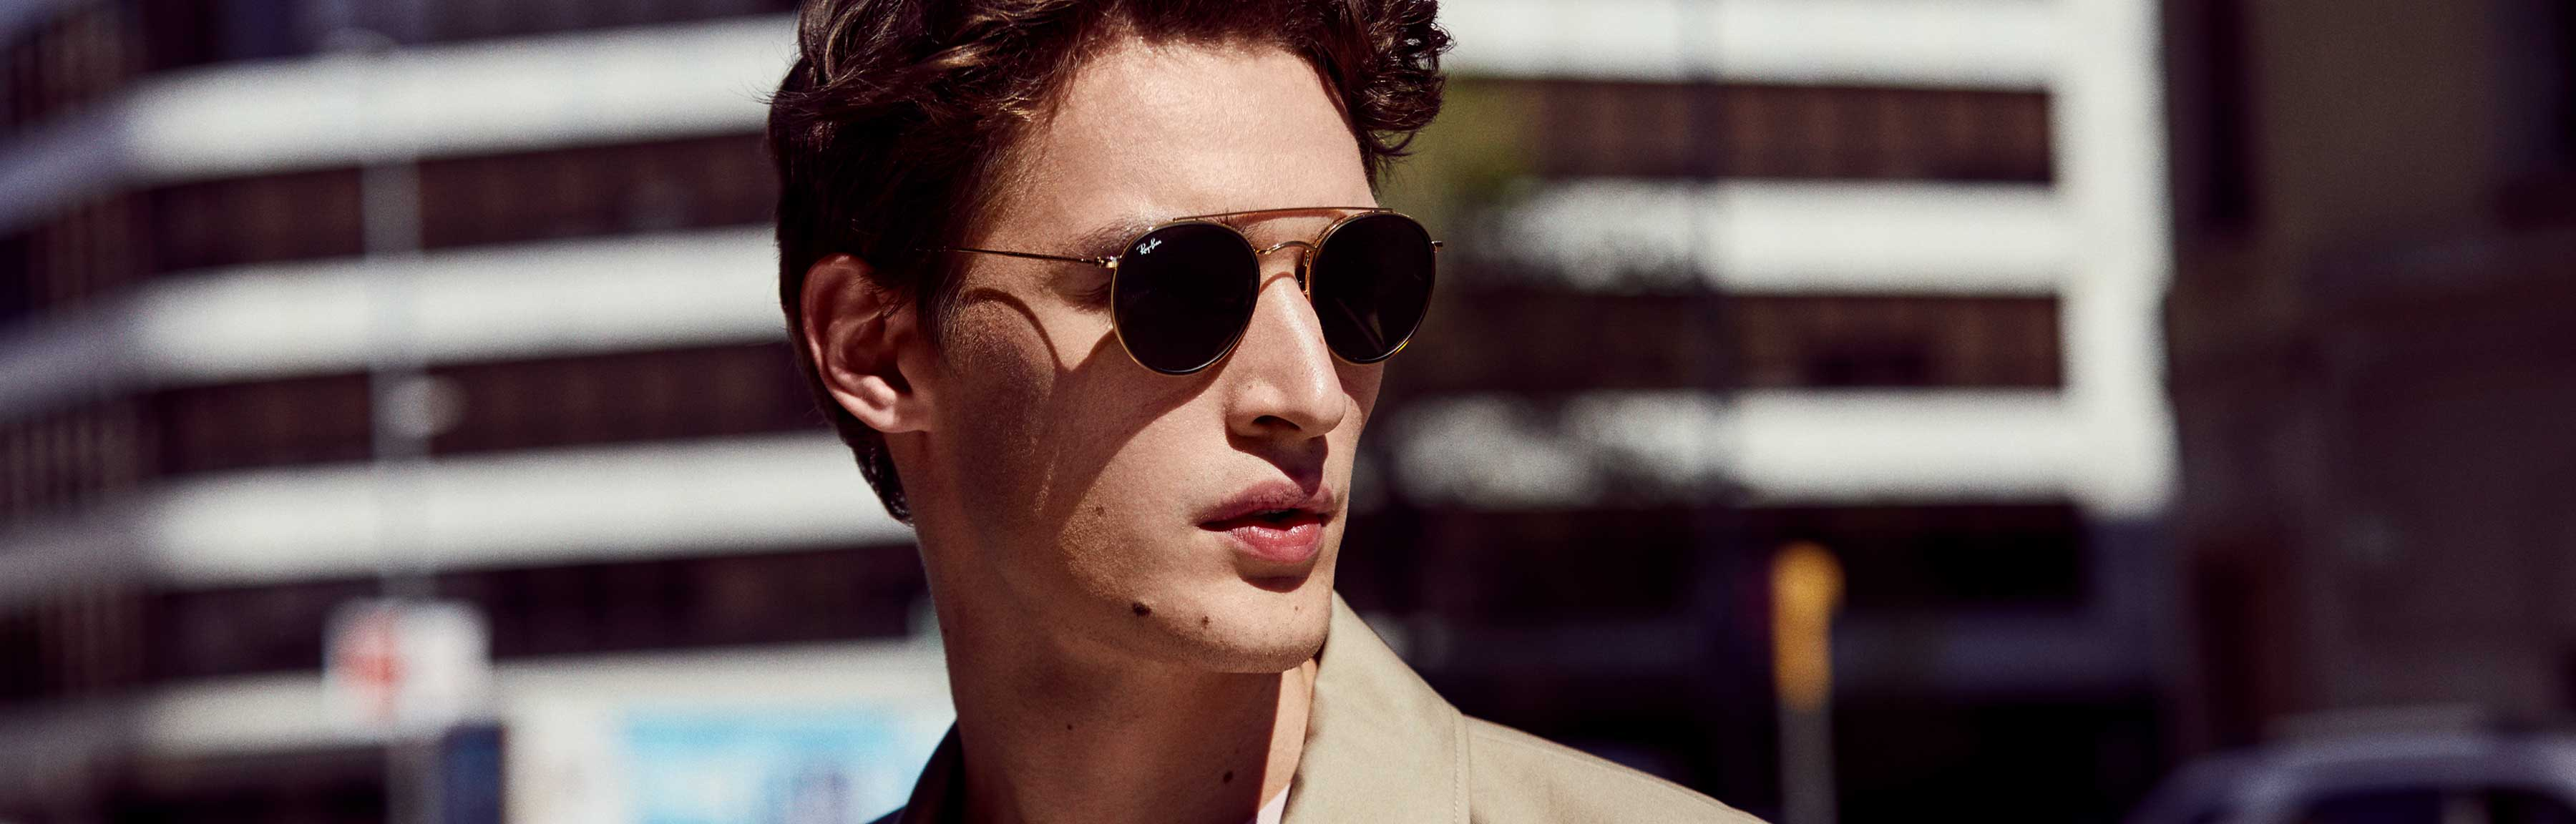 Sunglasses guide men